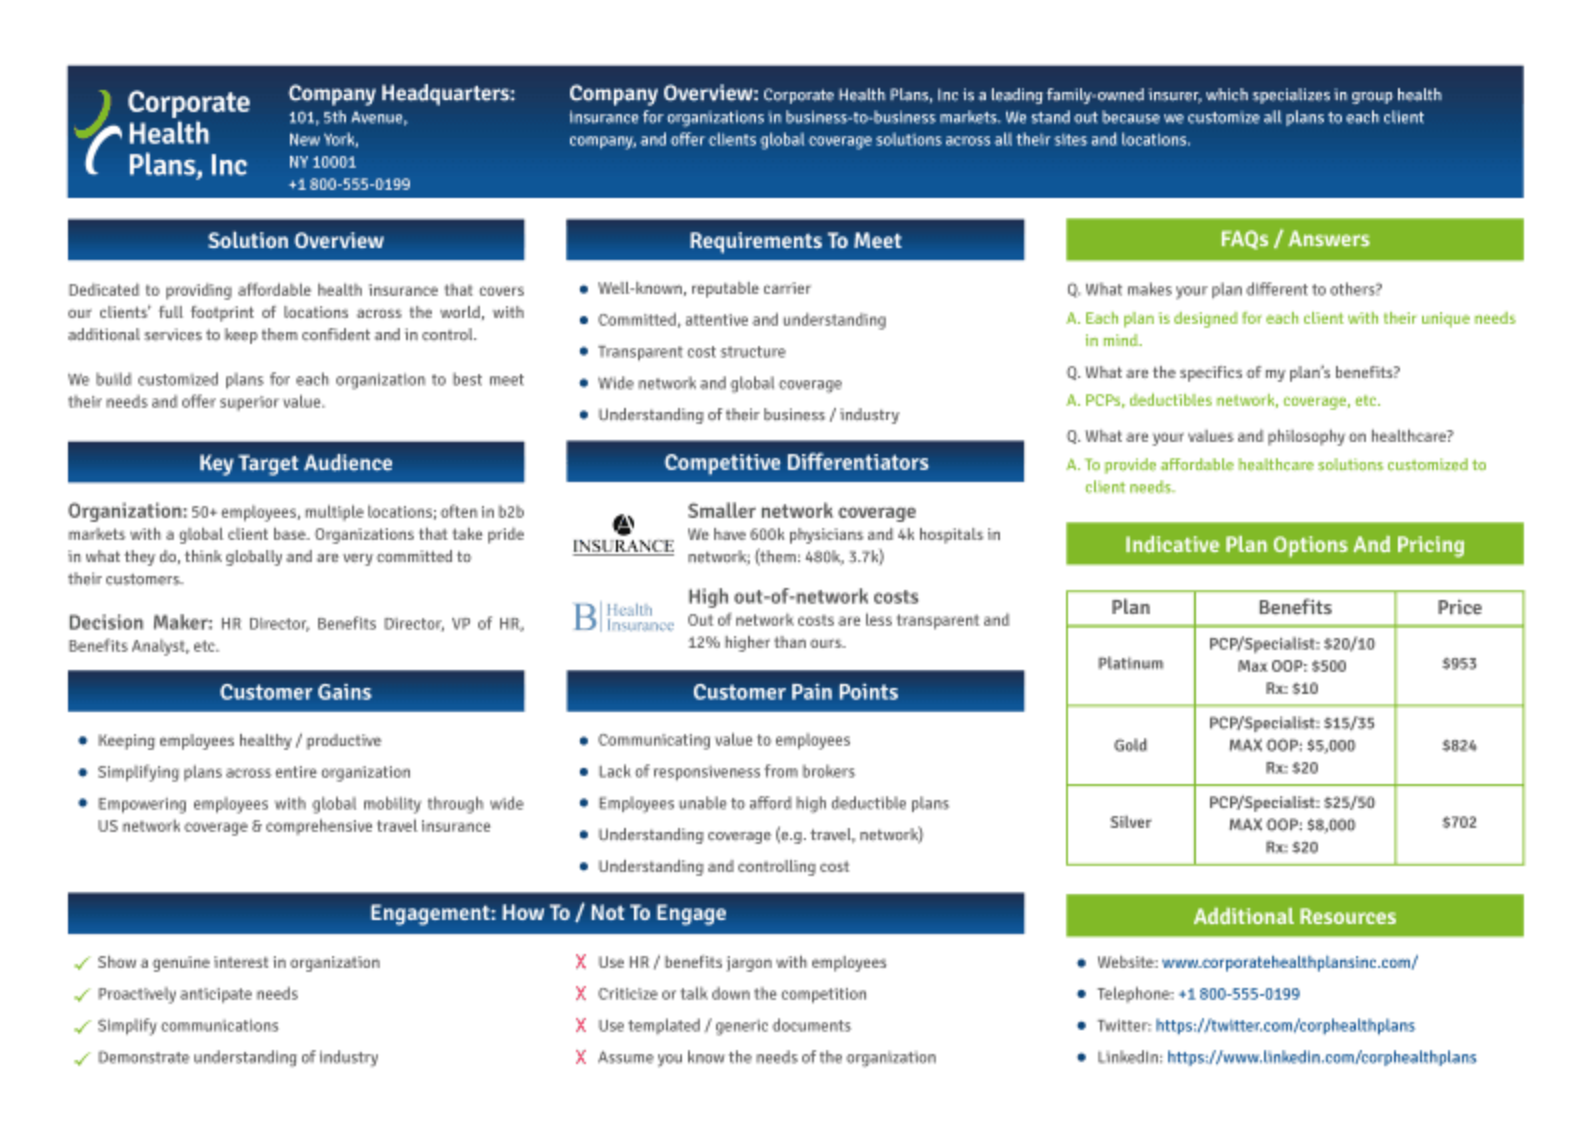 Example battlecard for Corporate Health Plans, Inc.